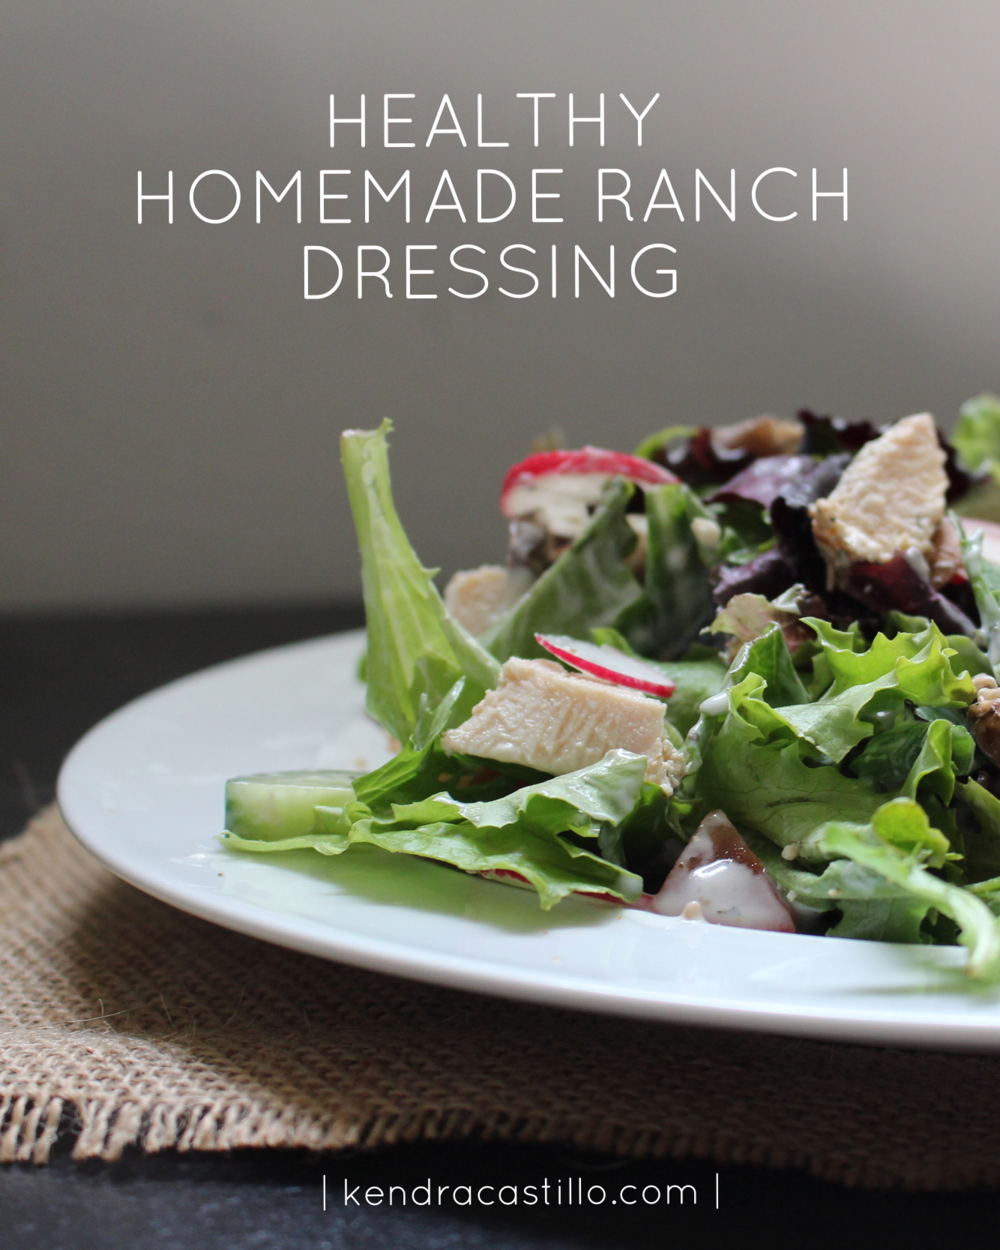 Healthy Homemade Ranch Dressing Recipe - Kendra Castillo